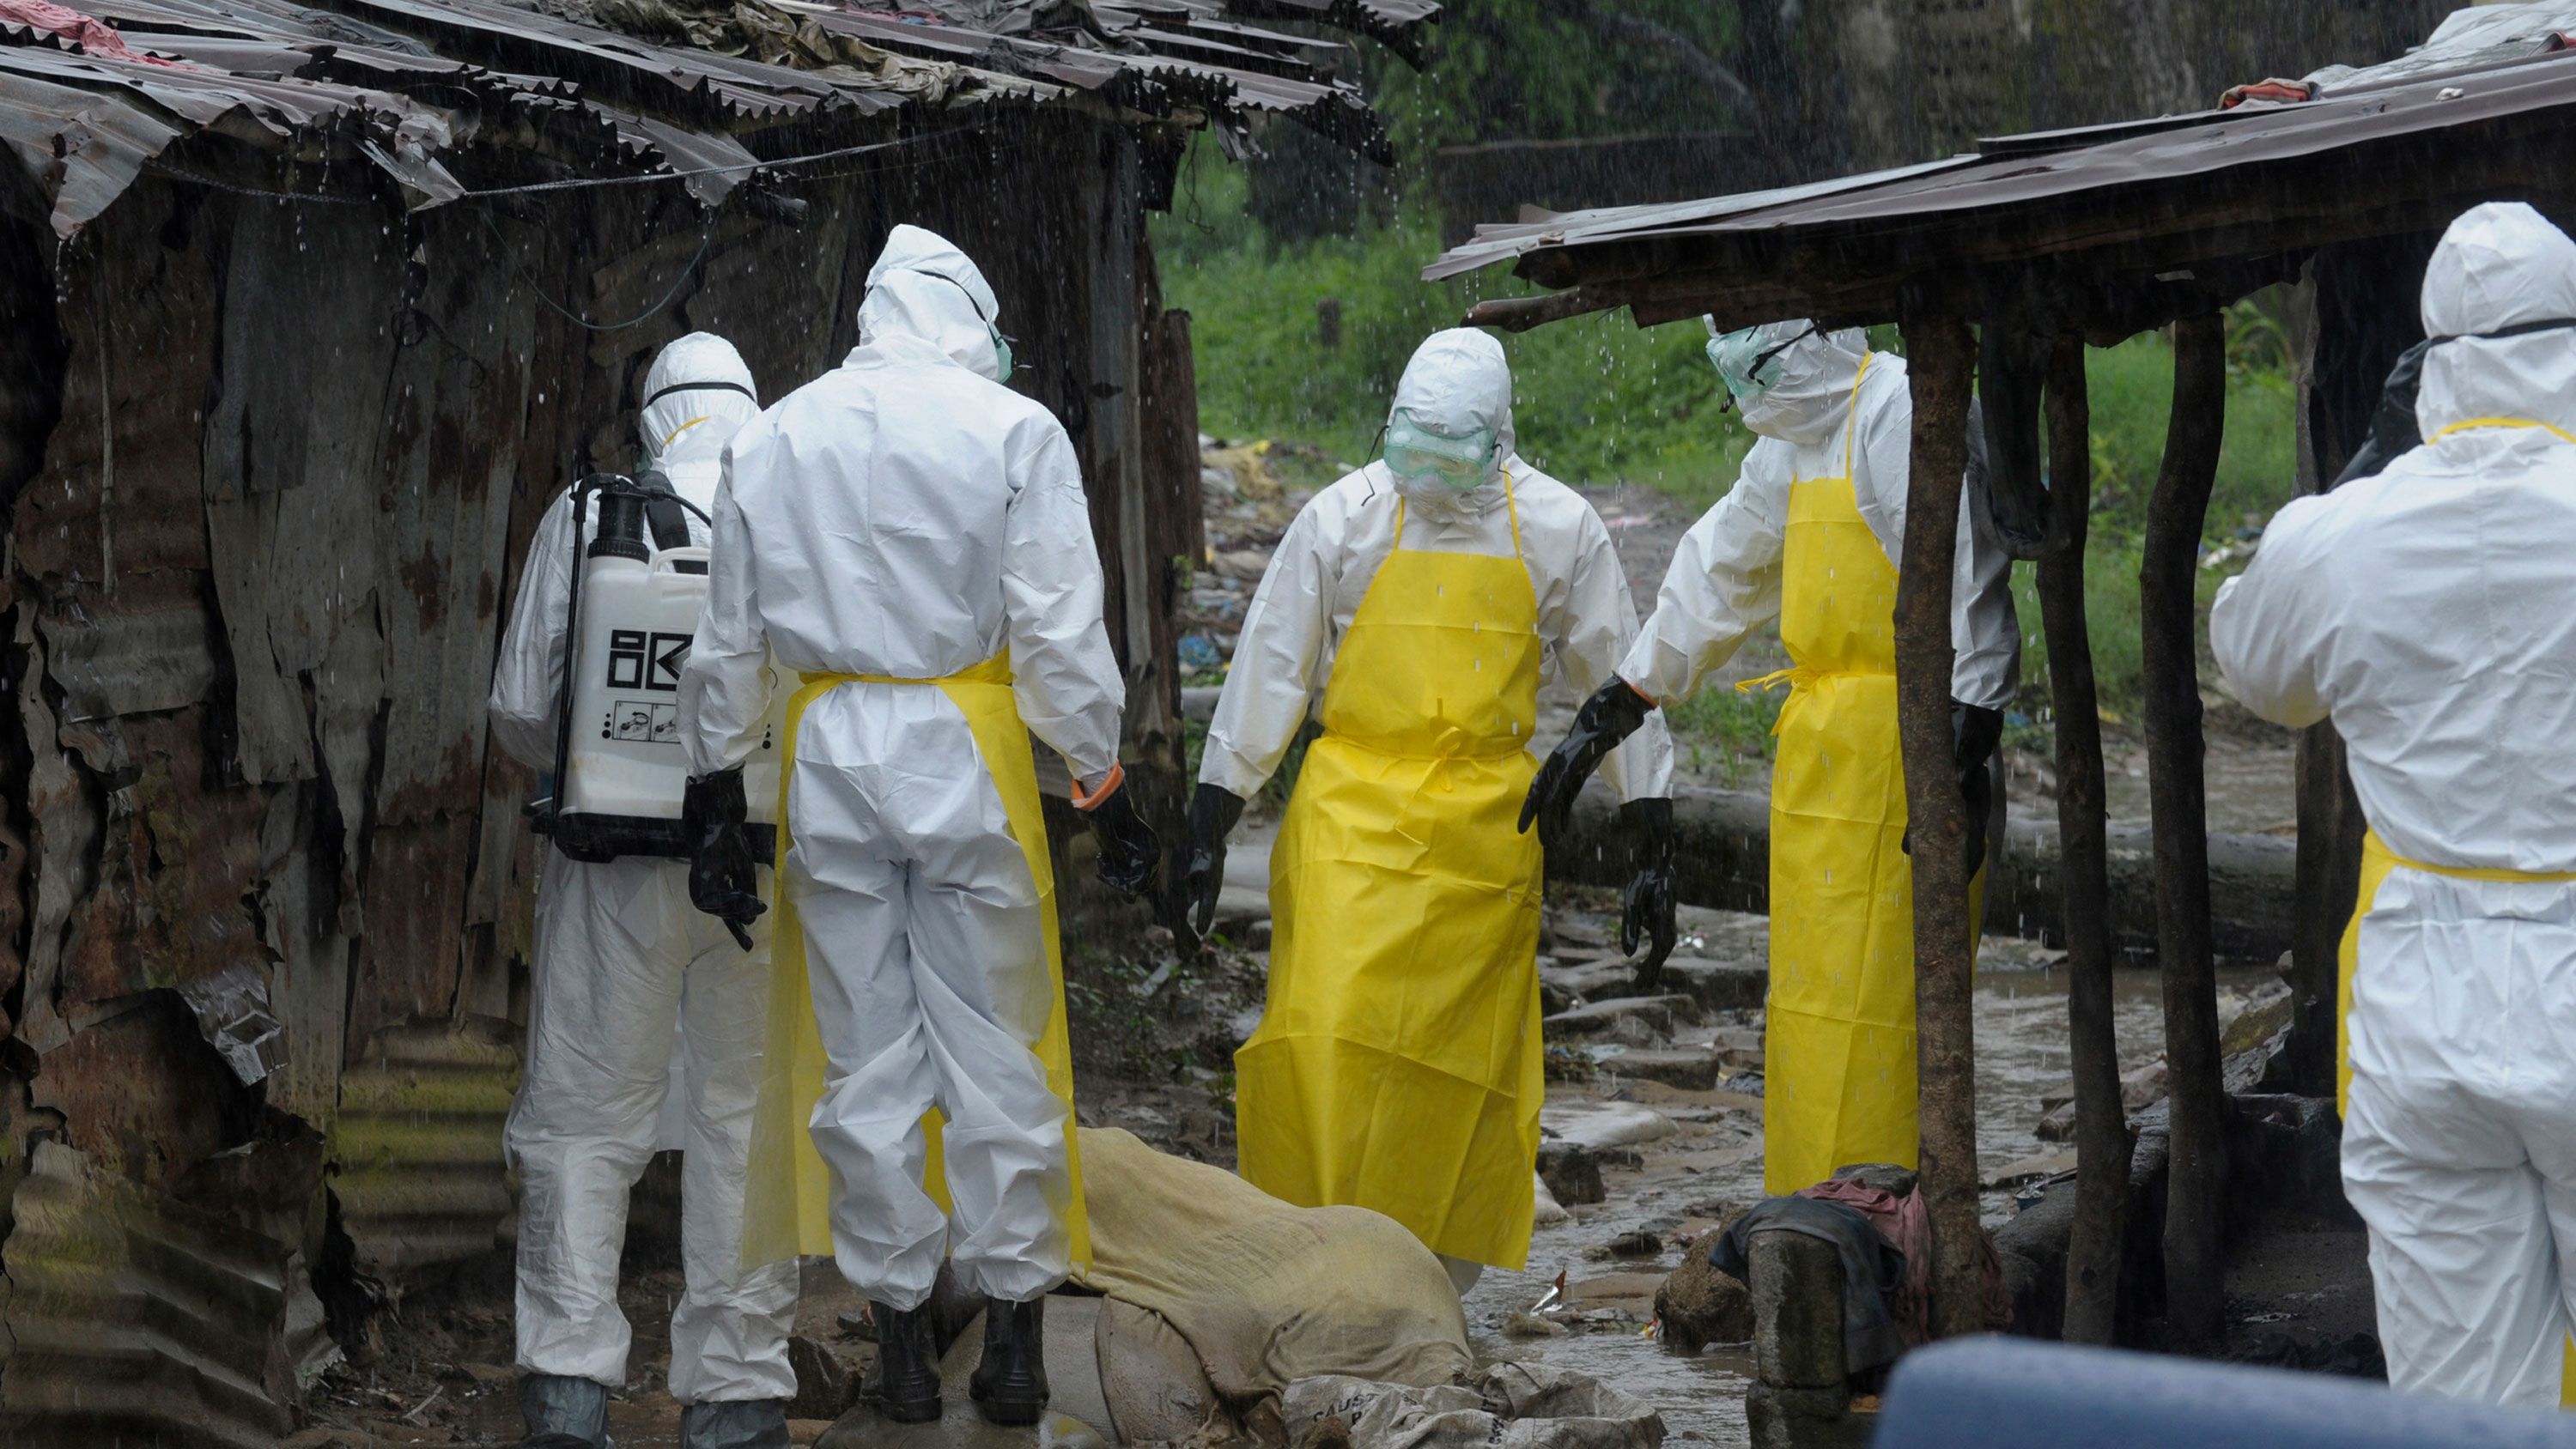 The photo shows half a dozen workers in full body protective suits standing in large mud puddles in the driving rain beside a body draped by a thin muslin cloth in between some ramshackle shacks. Some are pointing, and they appear to be discussing how to pick up the deceased victim.